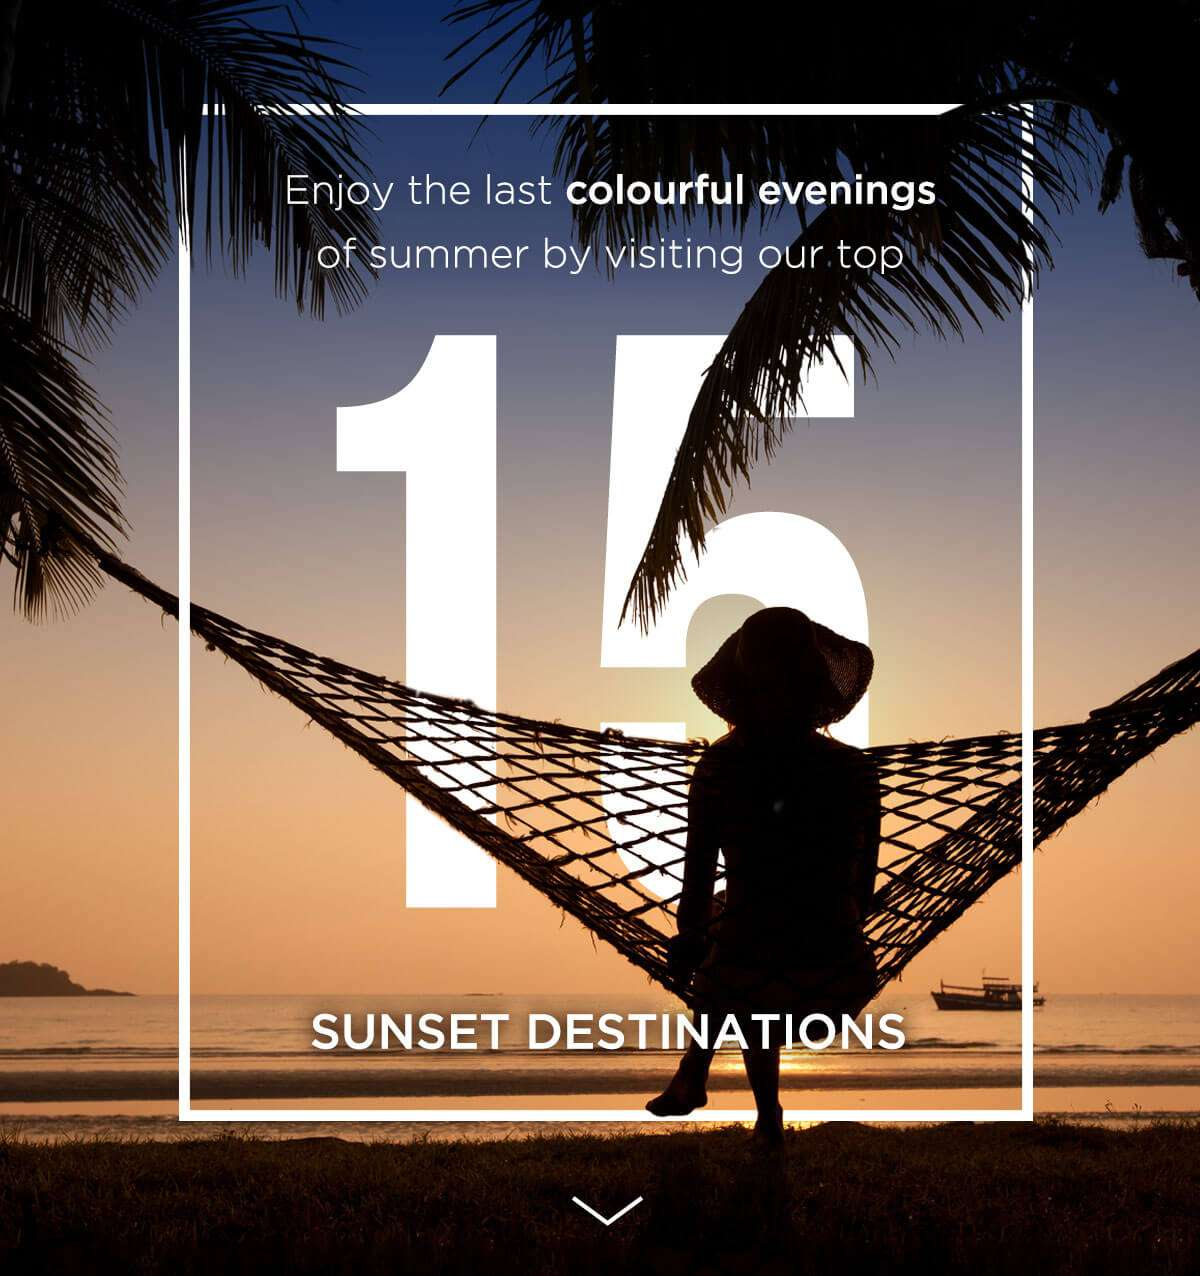 Check out our top 15 sunset destinations!